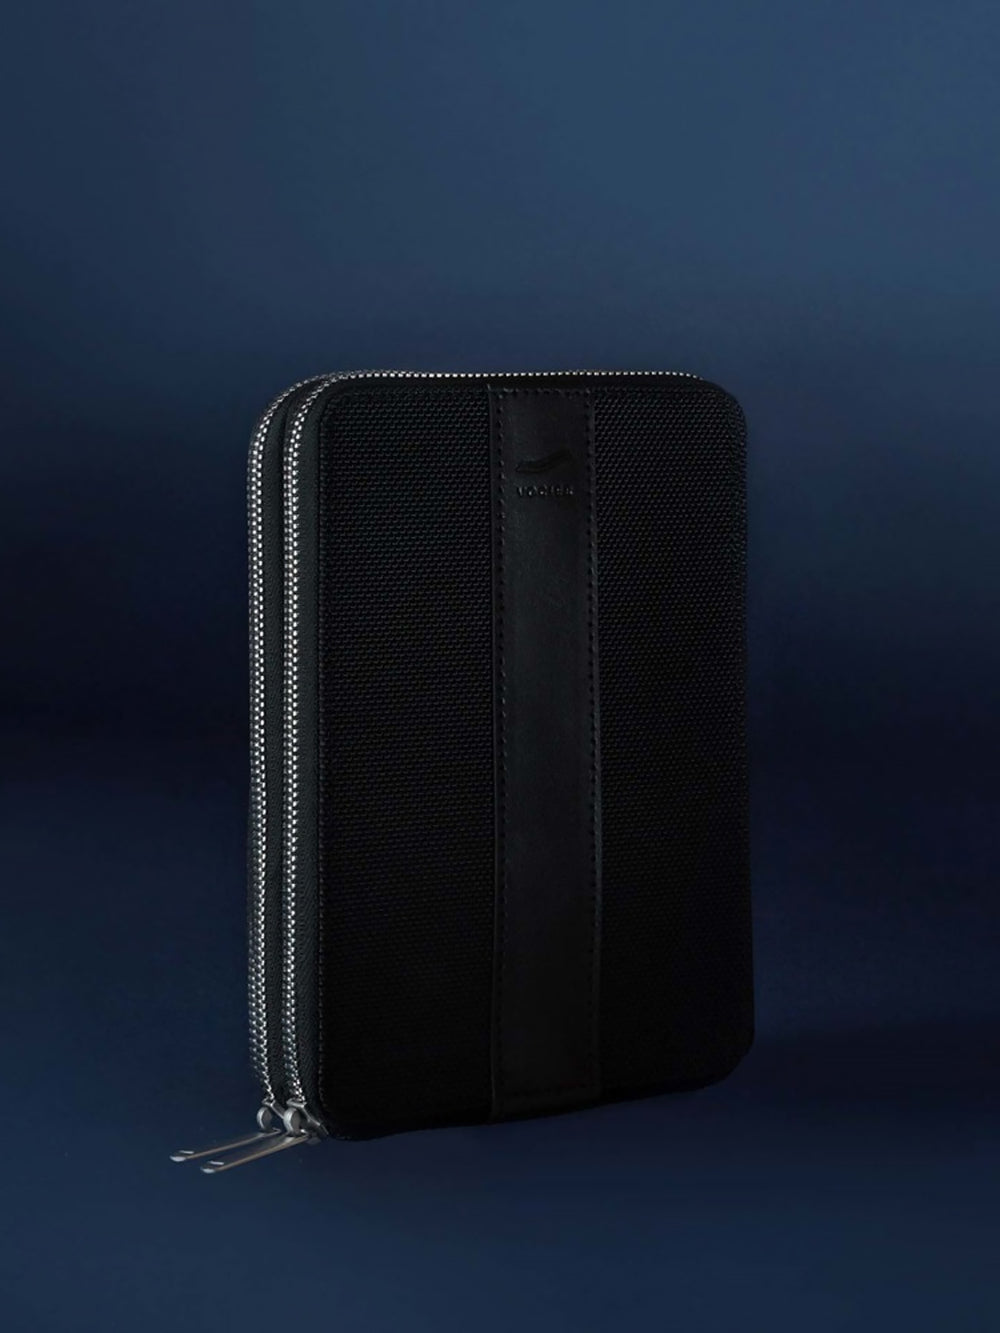 avant large high quality travel wallet